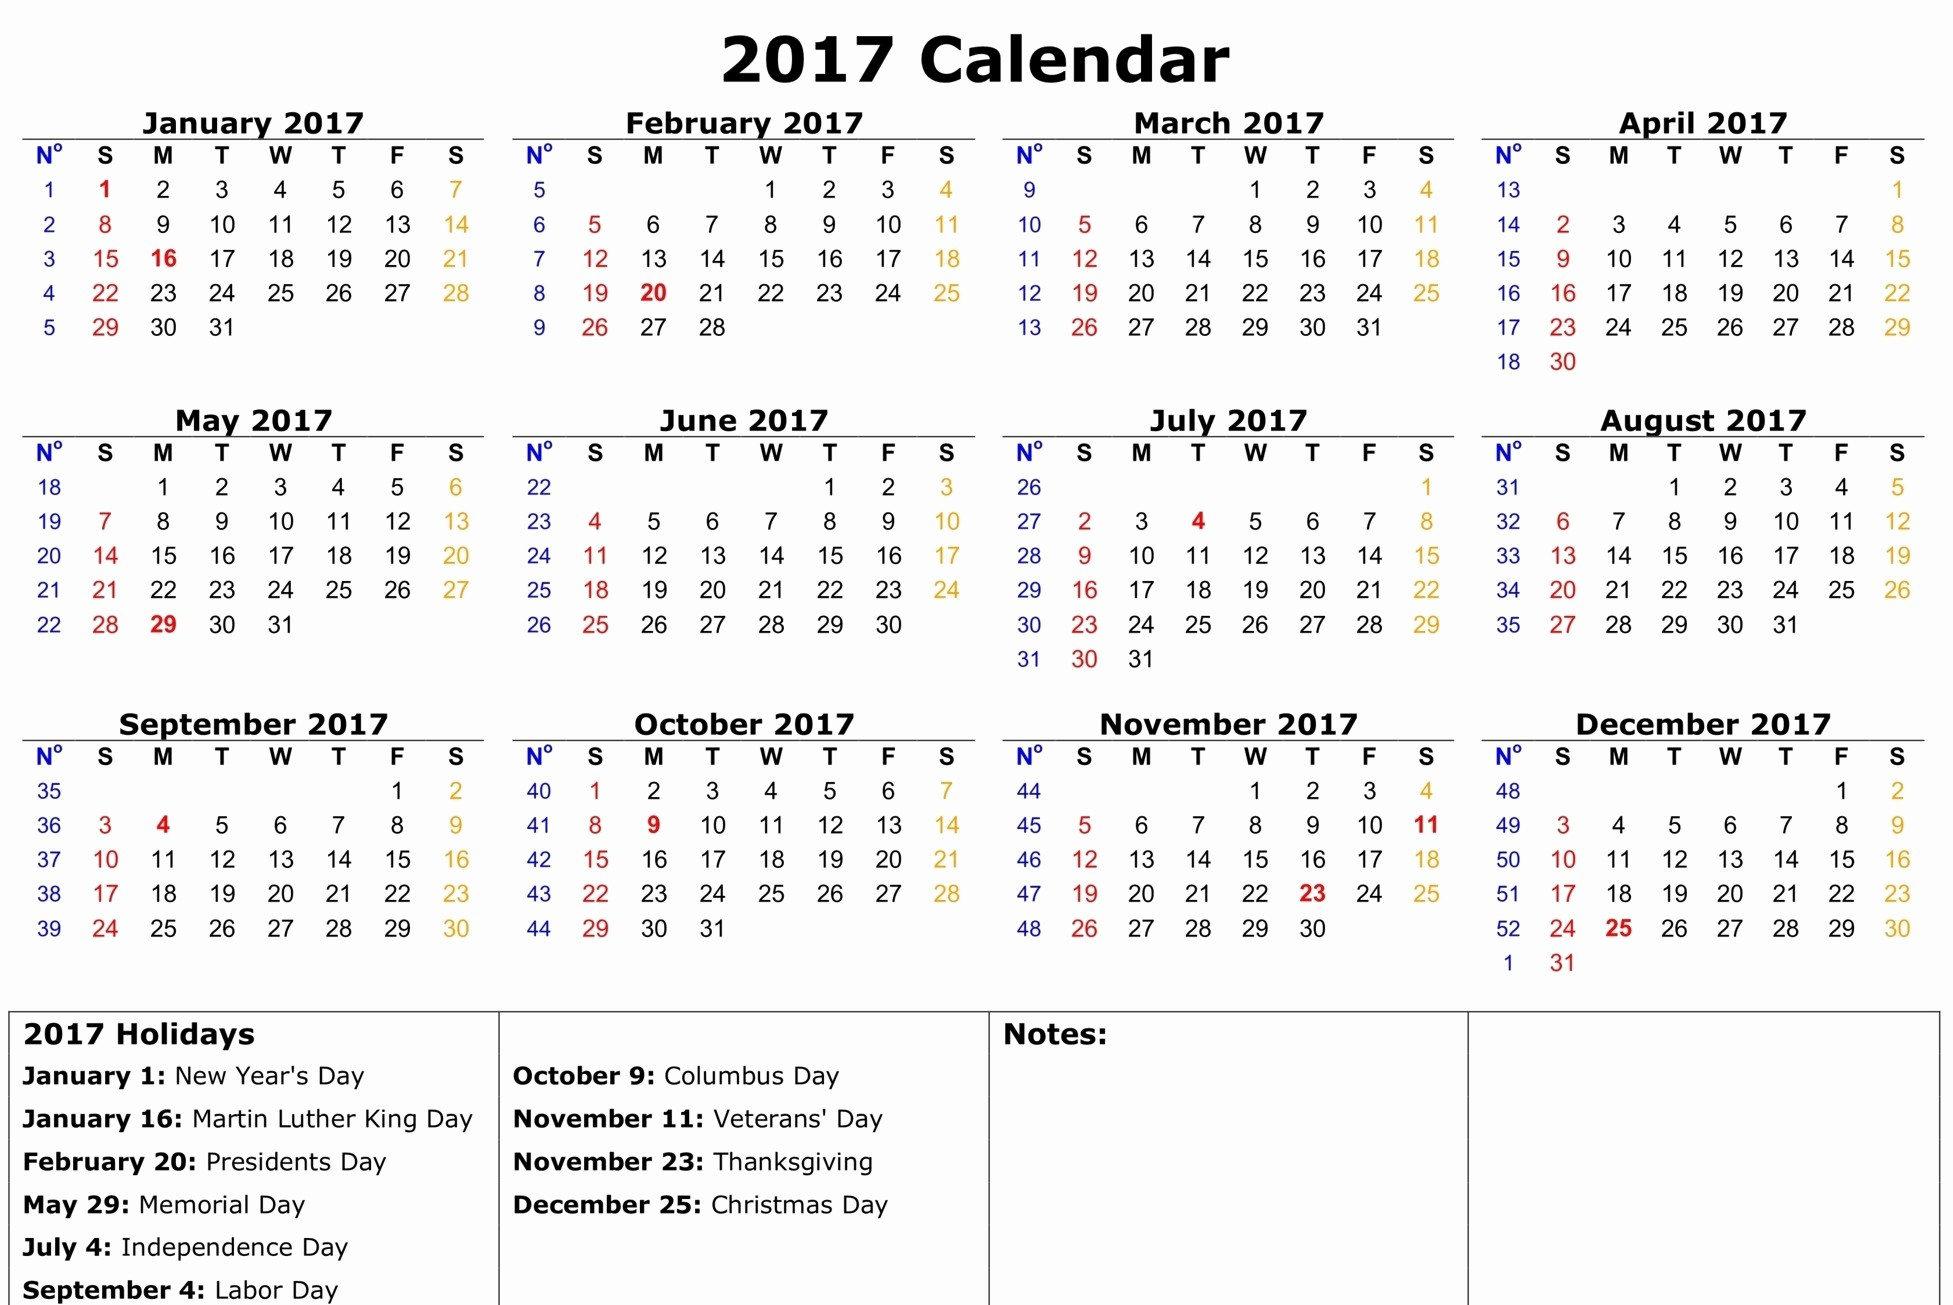 2017 Calendar with Holidays Template Awesome 2017 Calendar with Holidays [us Uk Canada]